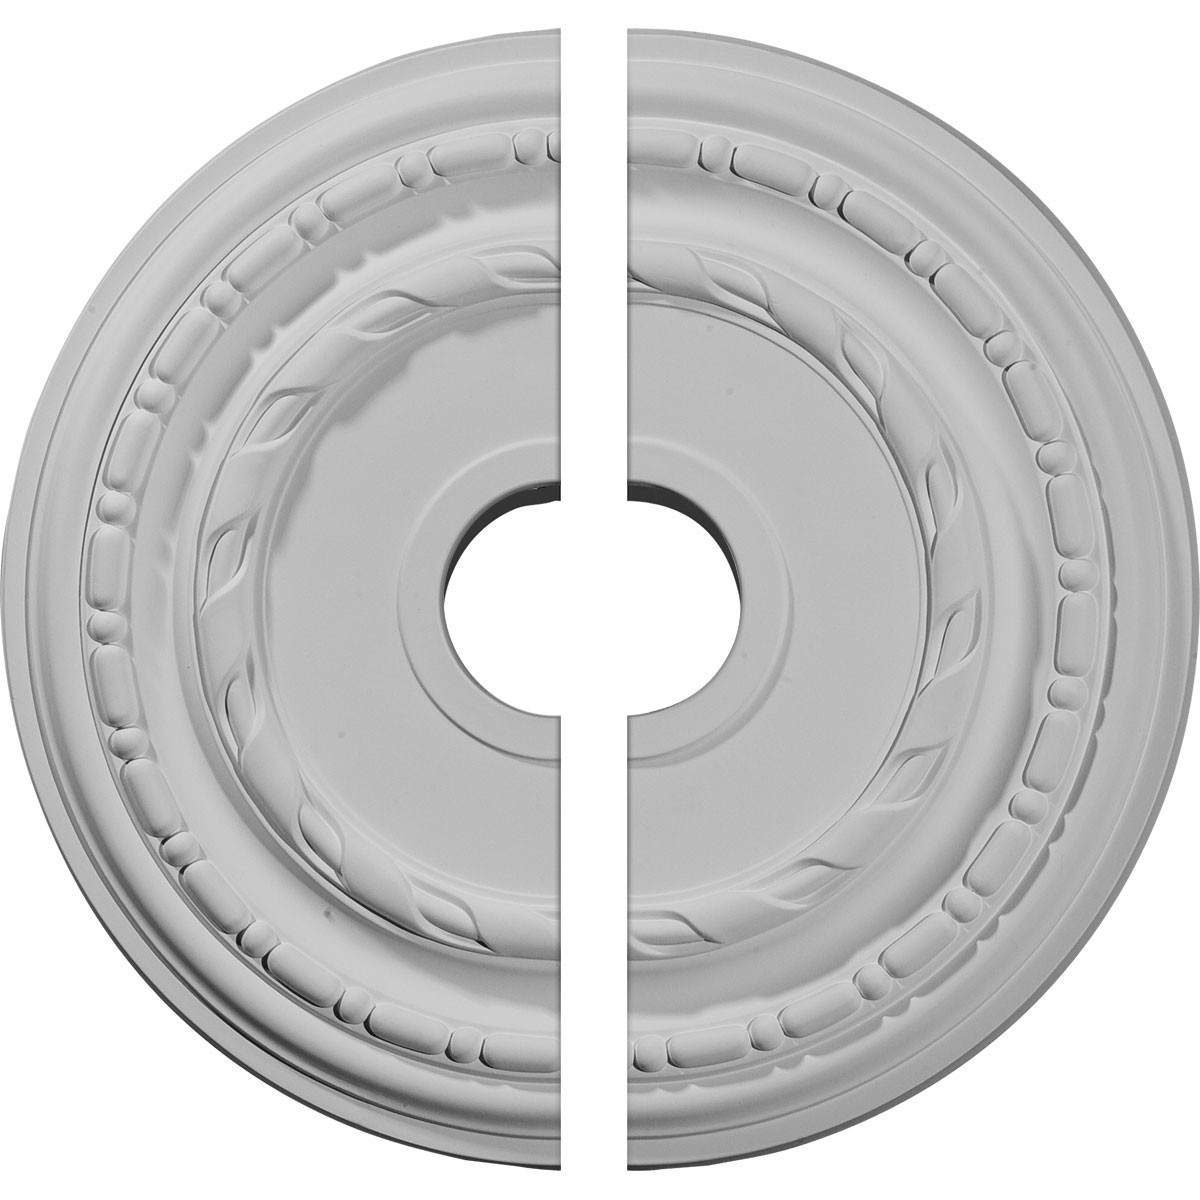 """EM-CM17DU2 - 17 7/8""""OD x 3 5/8""""ID x 1 1/4""""P Dublin Ceiling Medallion, Two Piece (Fits Canopies up to 5 1/8"""")"""